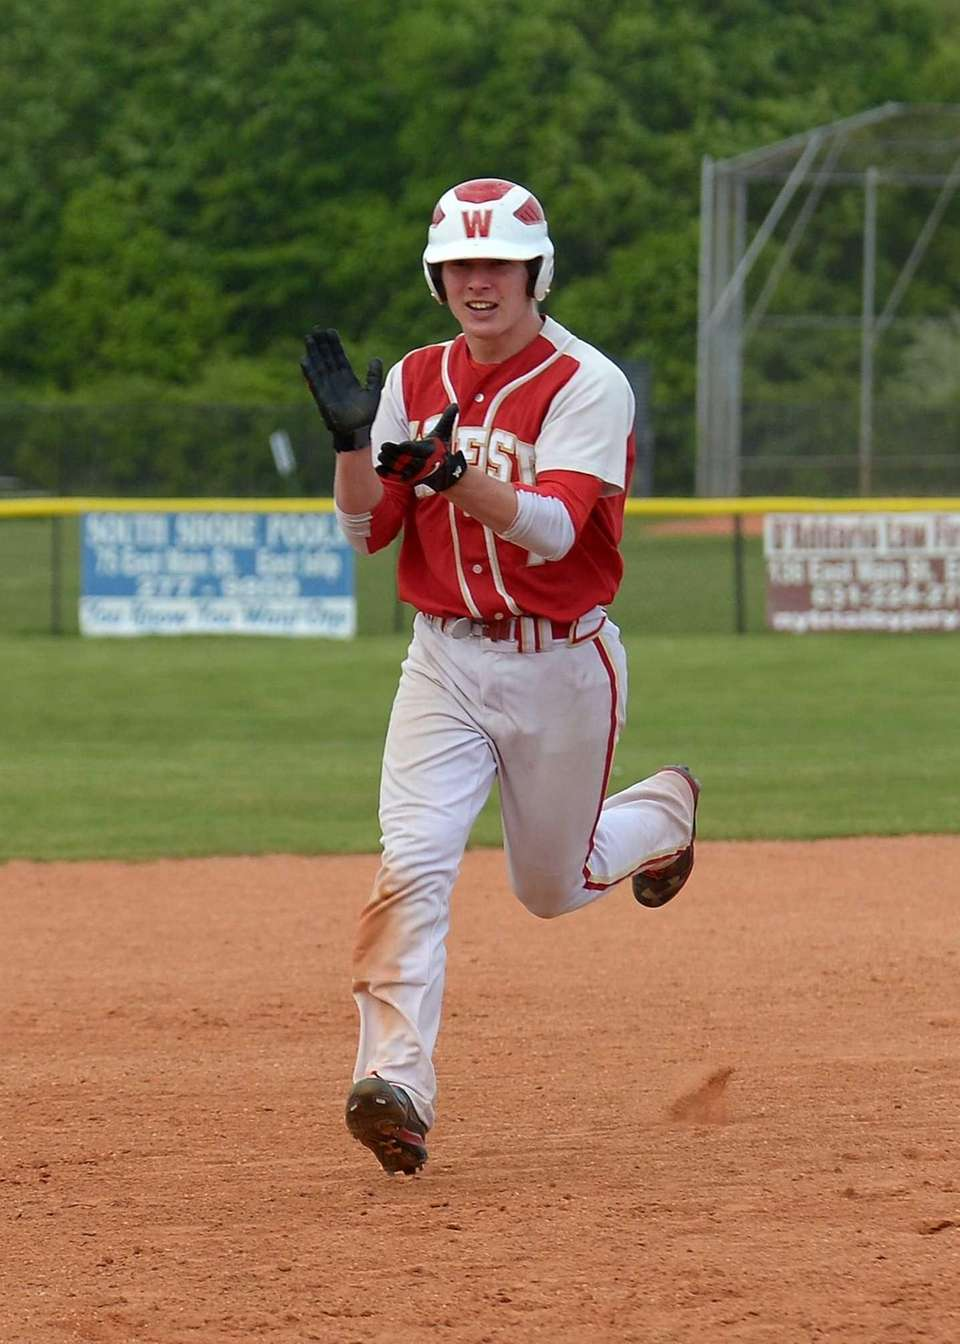 Hills West's David Golonowski (7) celebrates his two-run